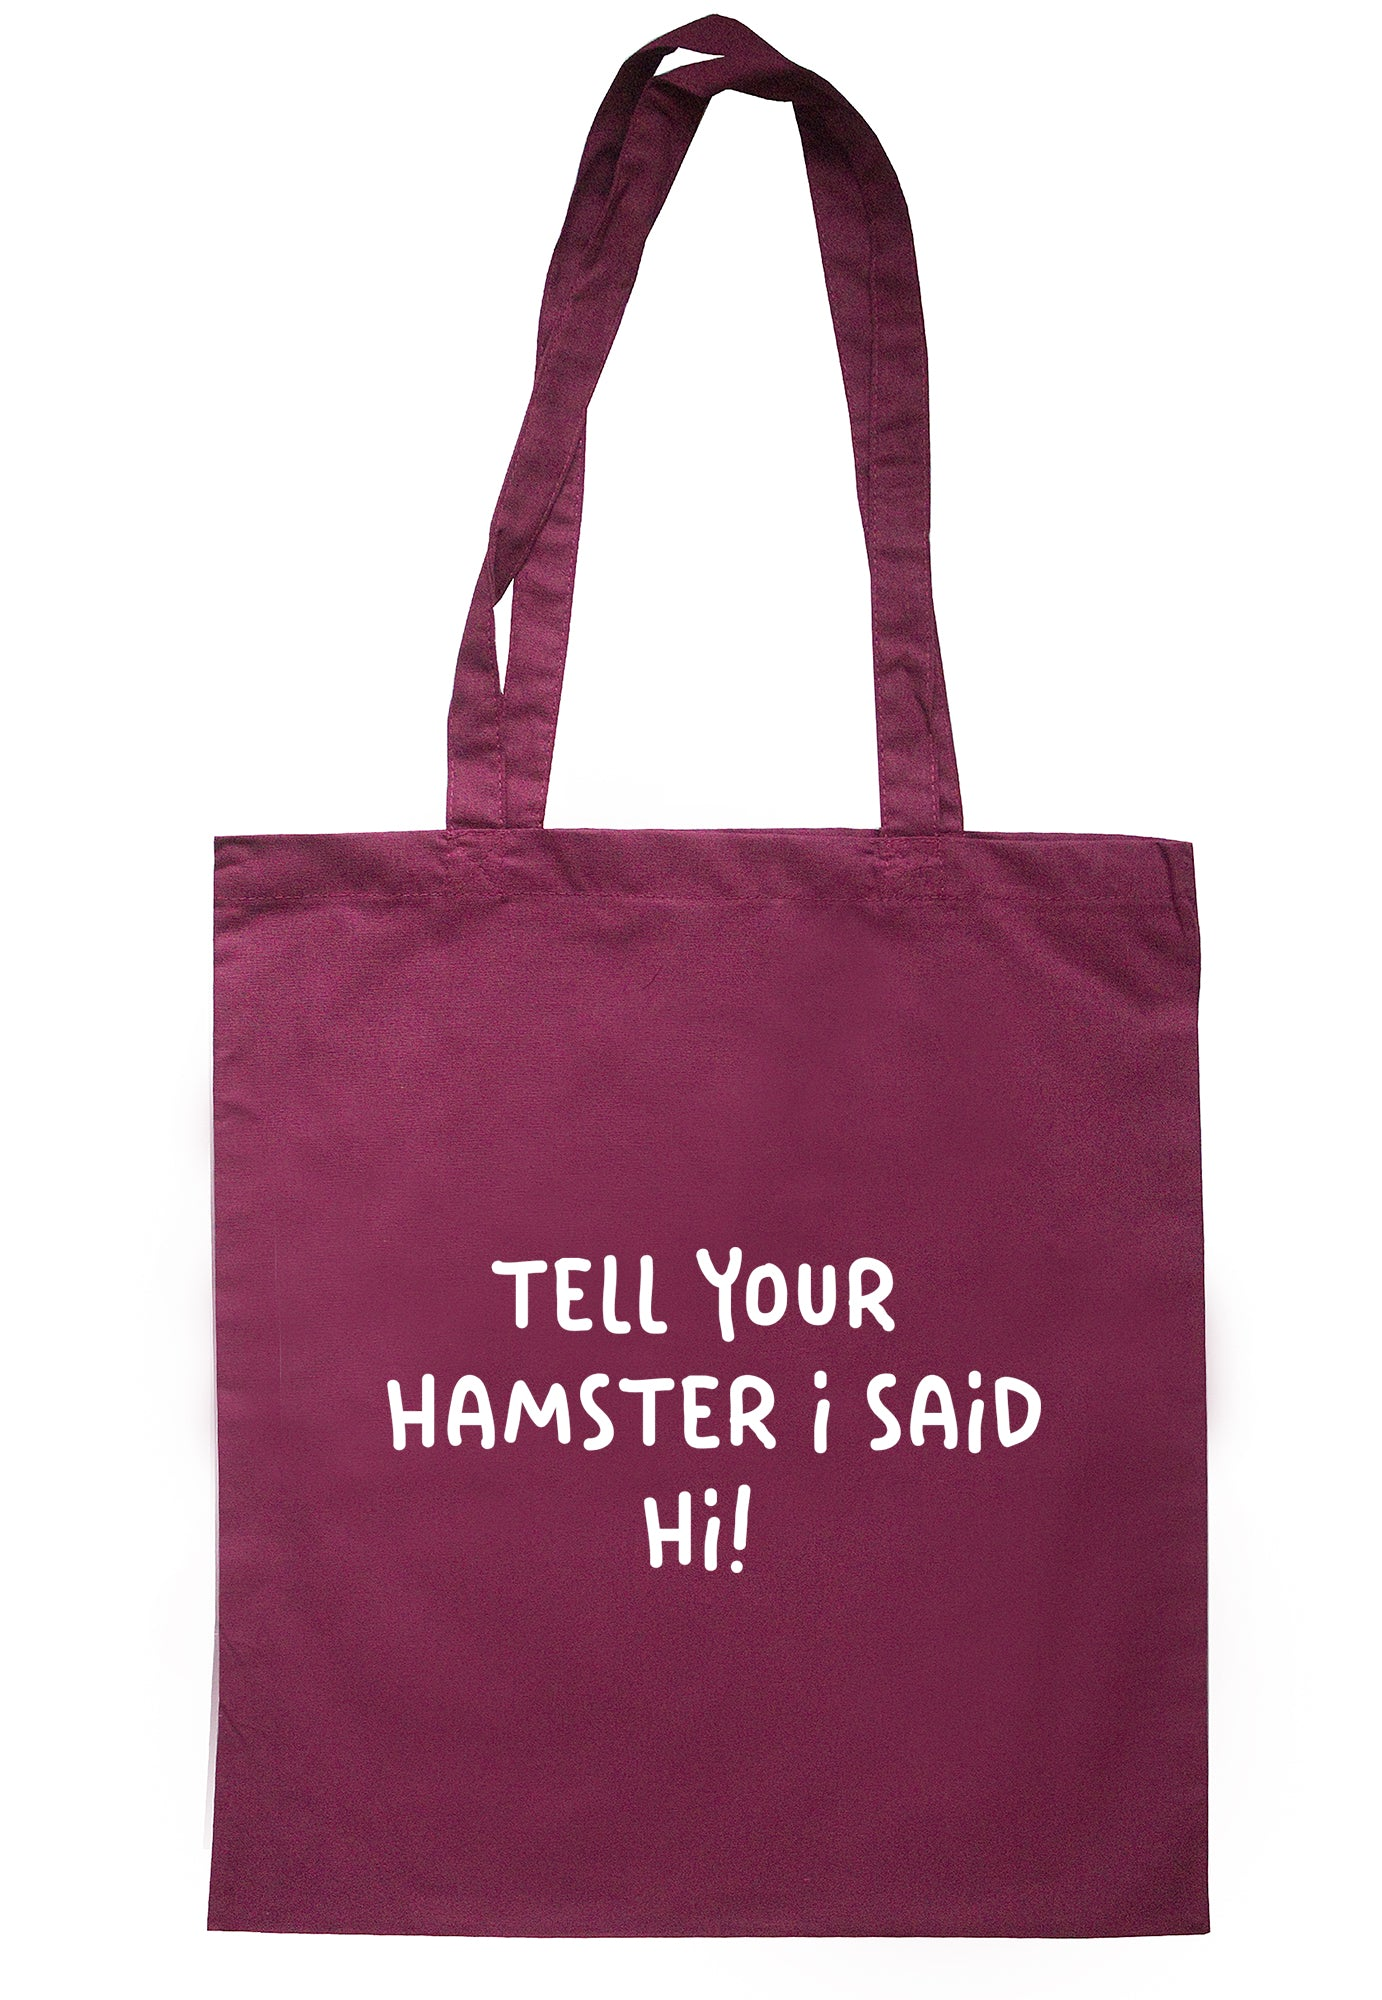 Tell Your Hamster I Said Hi! Tote Bag S1195 - Illustrated Identity Ltd.